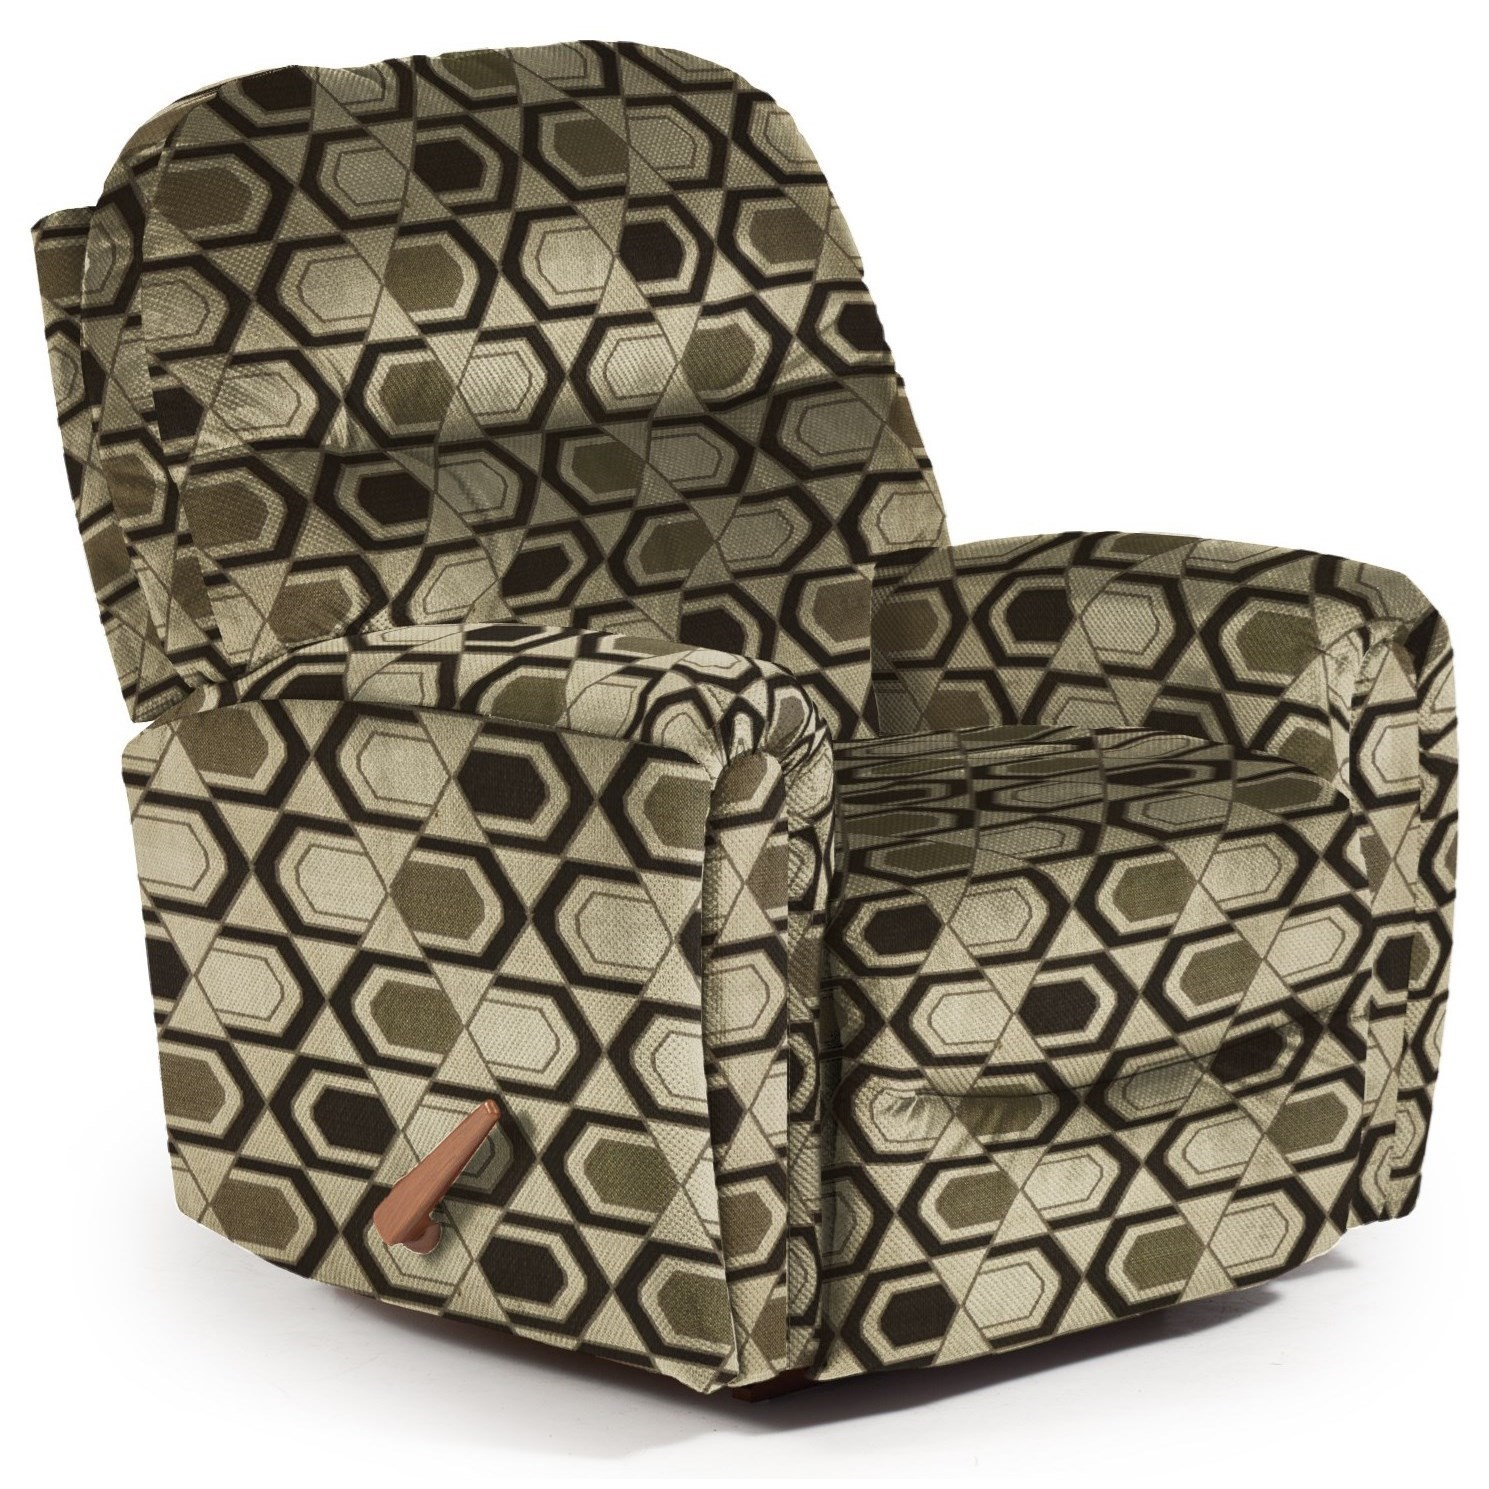 Best Home Furnishings Recliners - Medium Markson Space Saver Recliner - Item Number: 110599587-30563